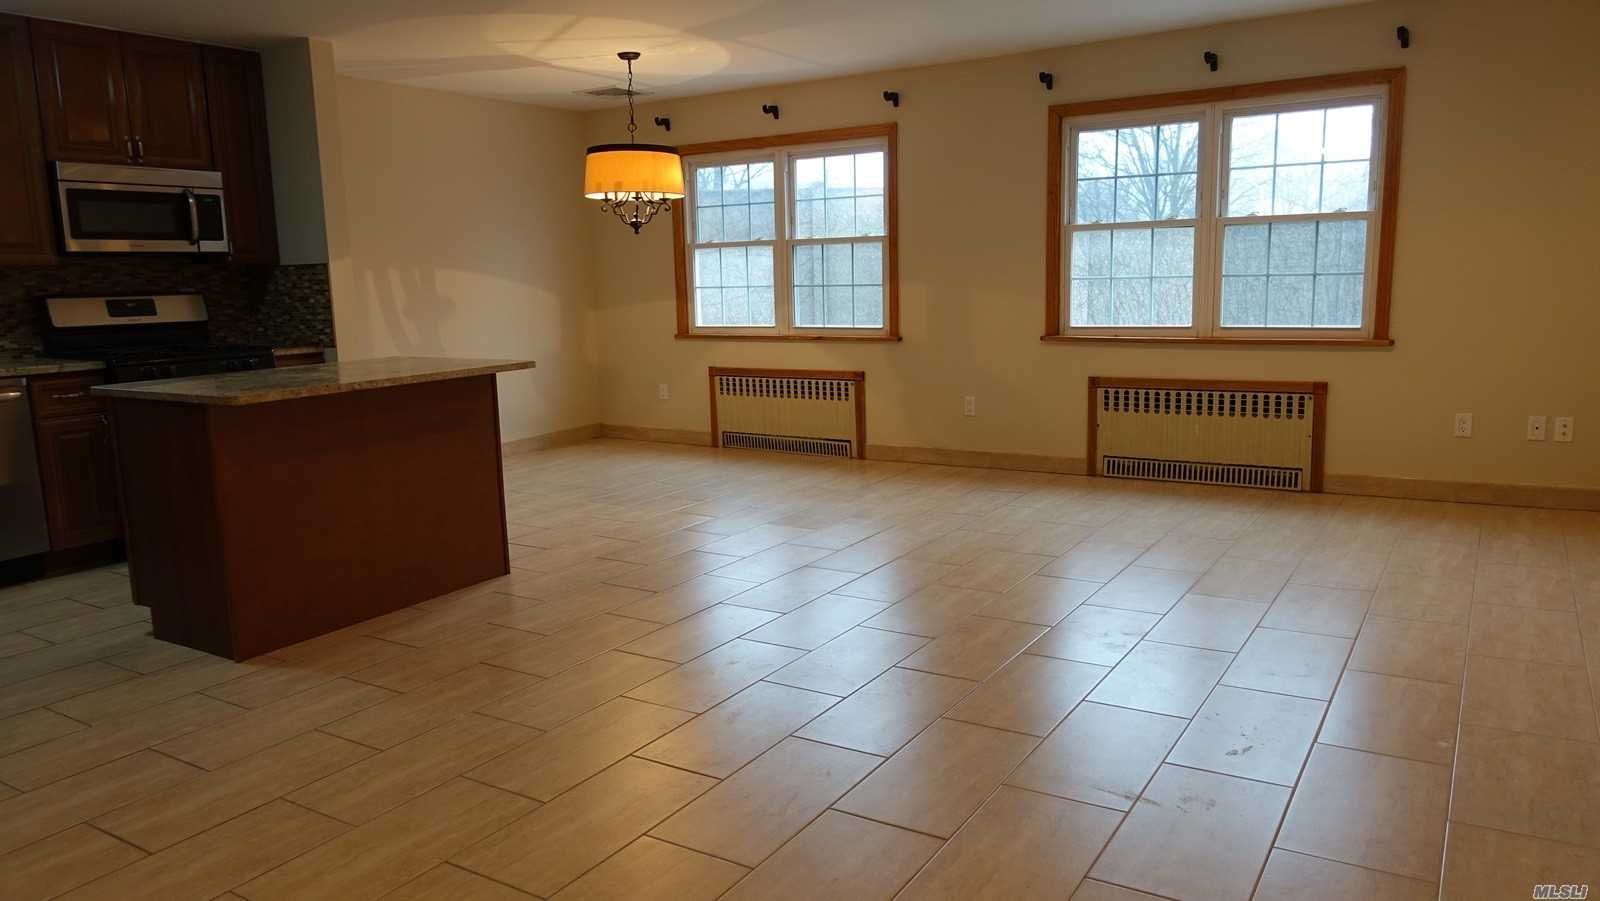 Beautiful Like New. Granite Counter Top And Island Kitchen, Sep Washer And Dryer, Cac, Near Little Bay Park & Fort Totten Good For Running And Walking, Close To Bay Terrace Mall, Too Many Things To List.. Must See!